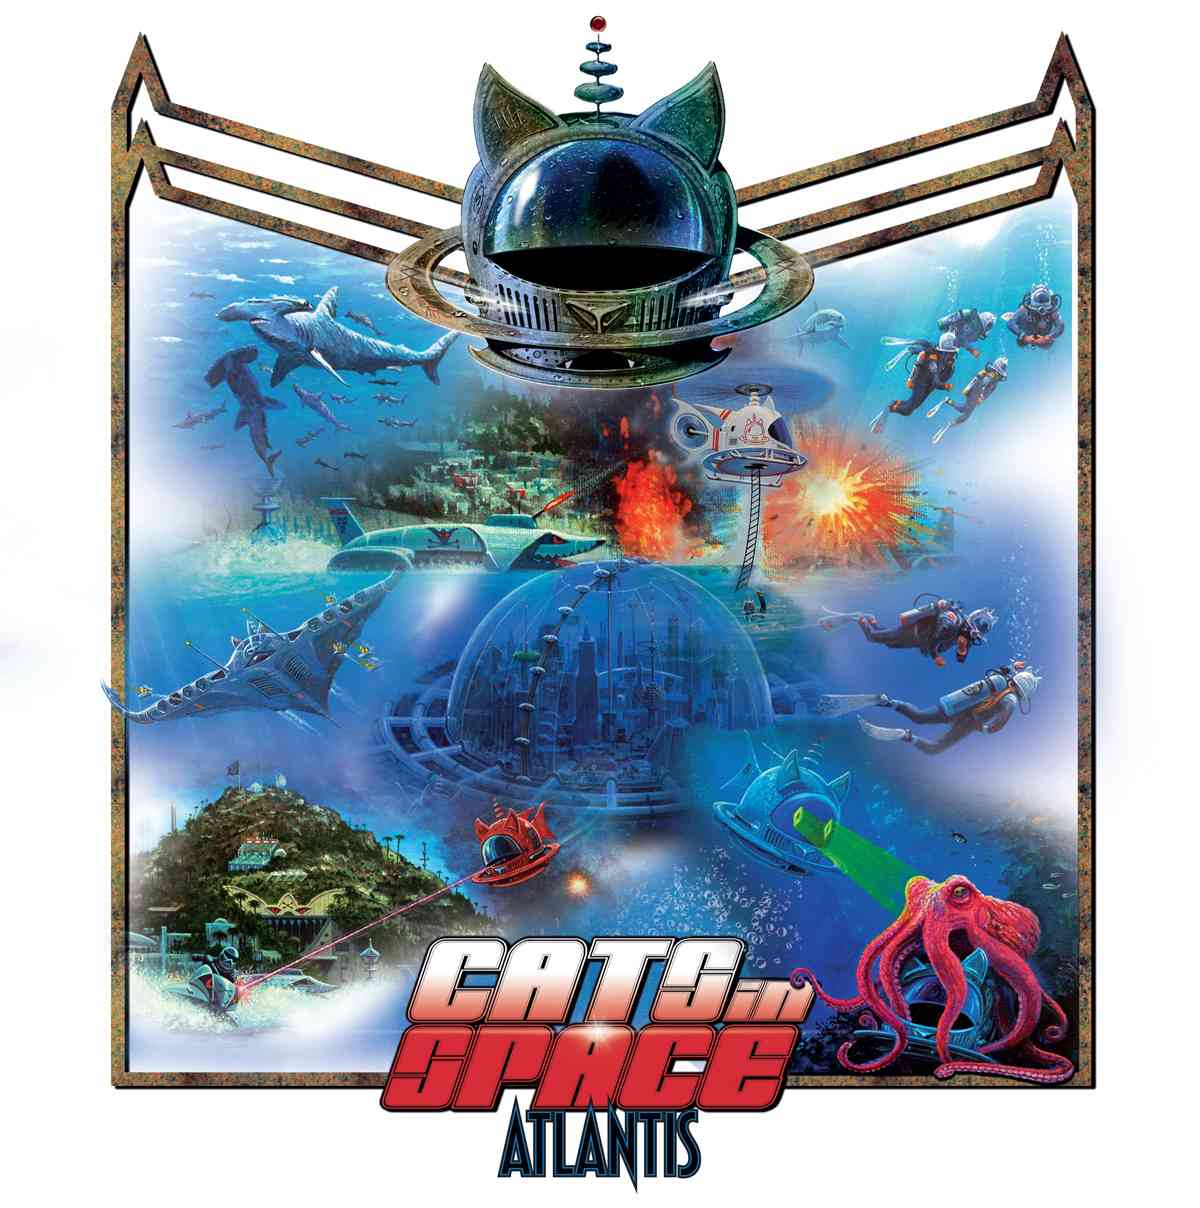 cats in space - atlantis - album cover